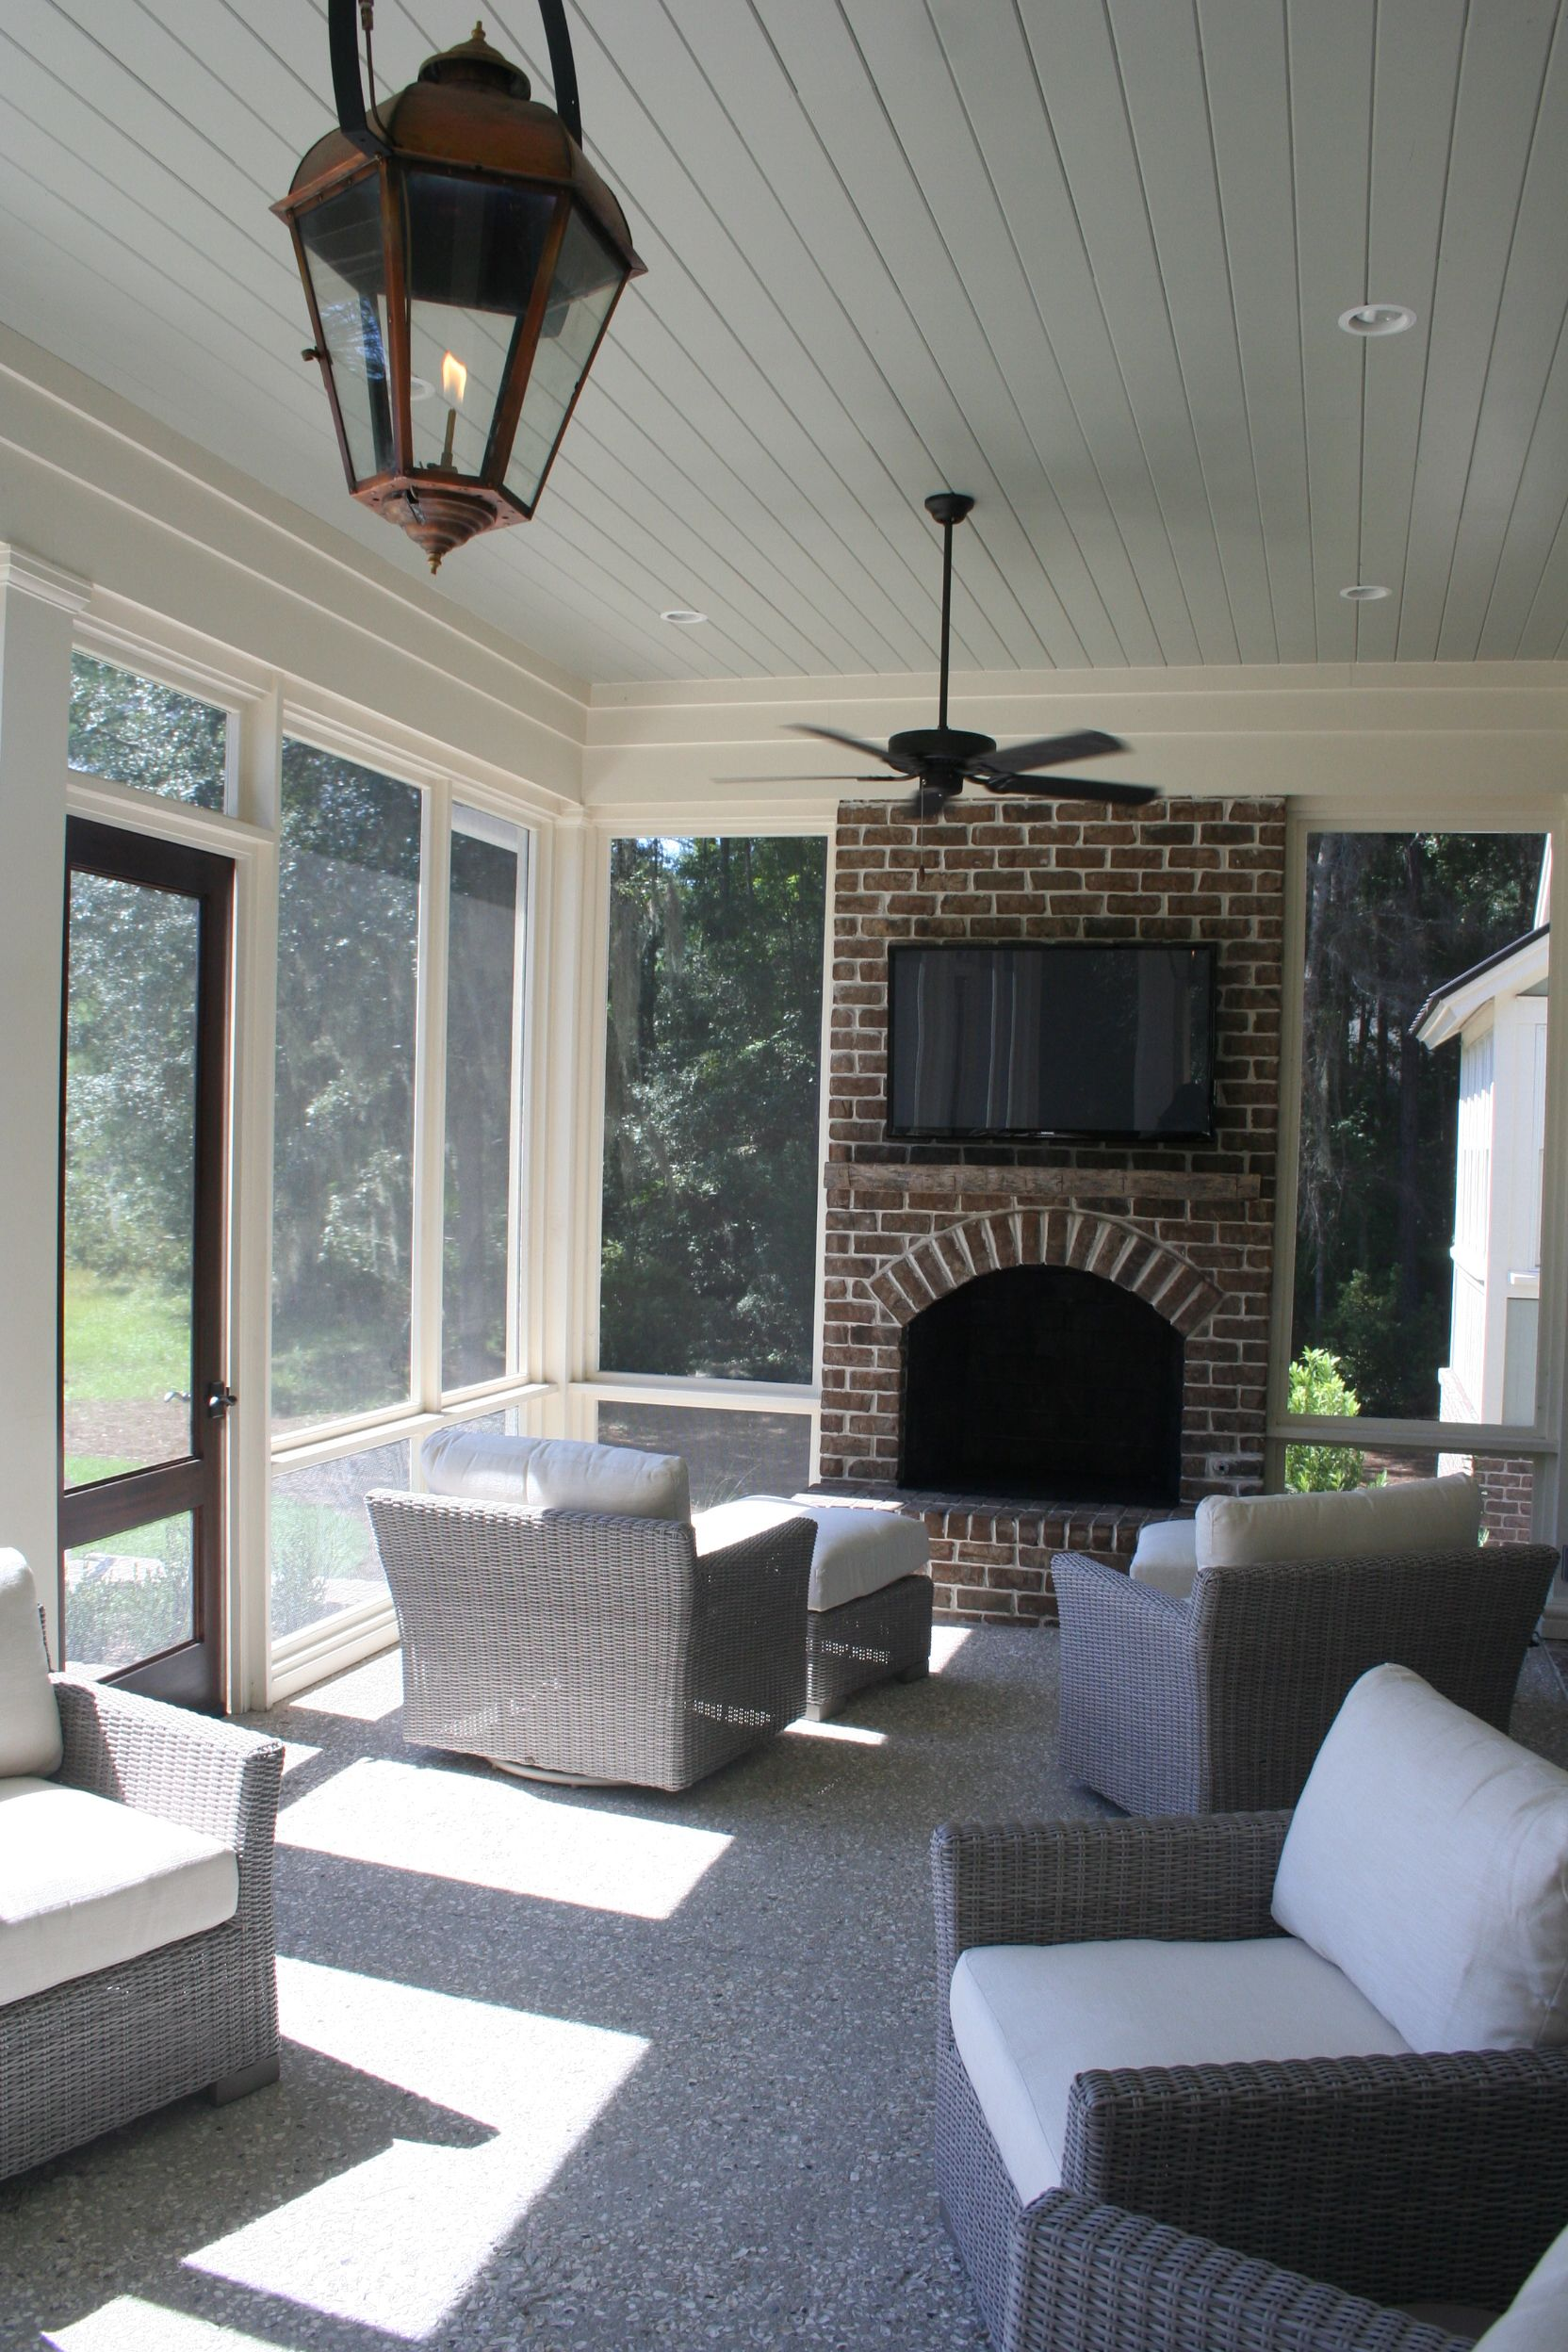 Screened in back porch pearce scott architects decks for Screened in porch fireplace ideas